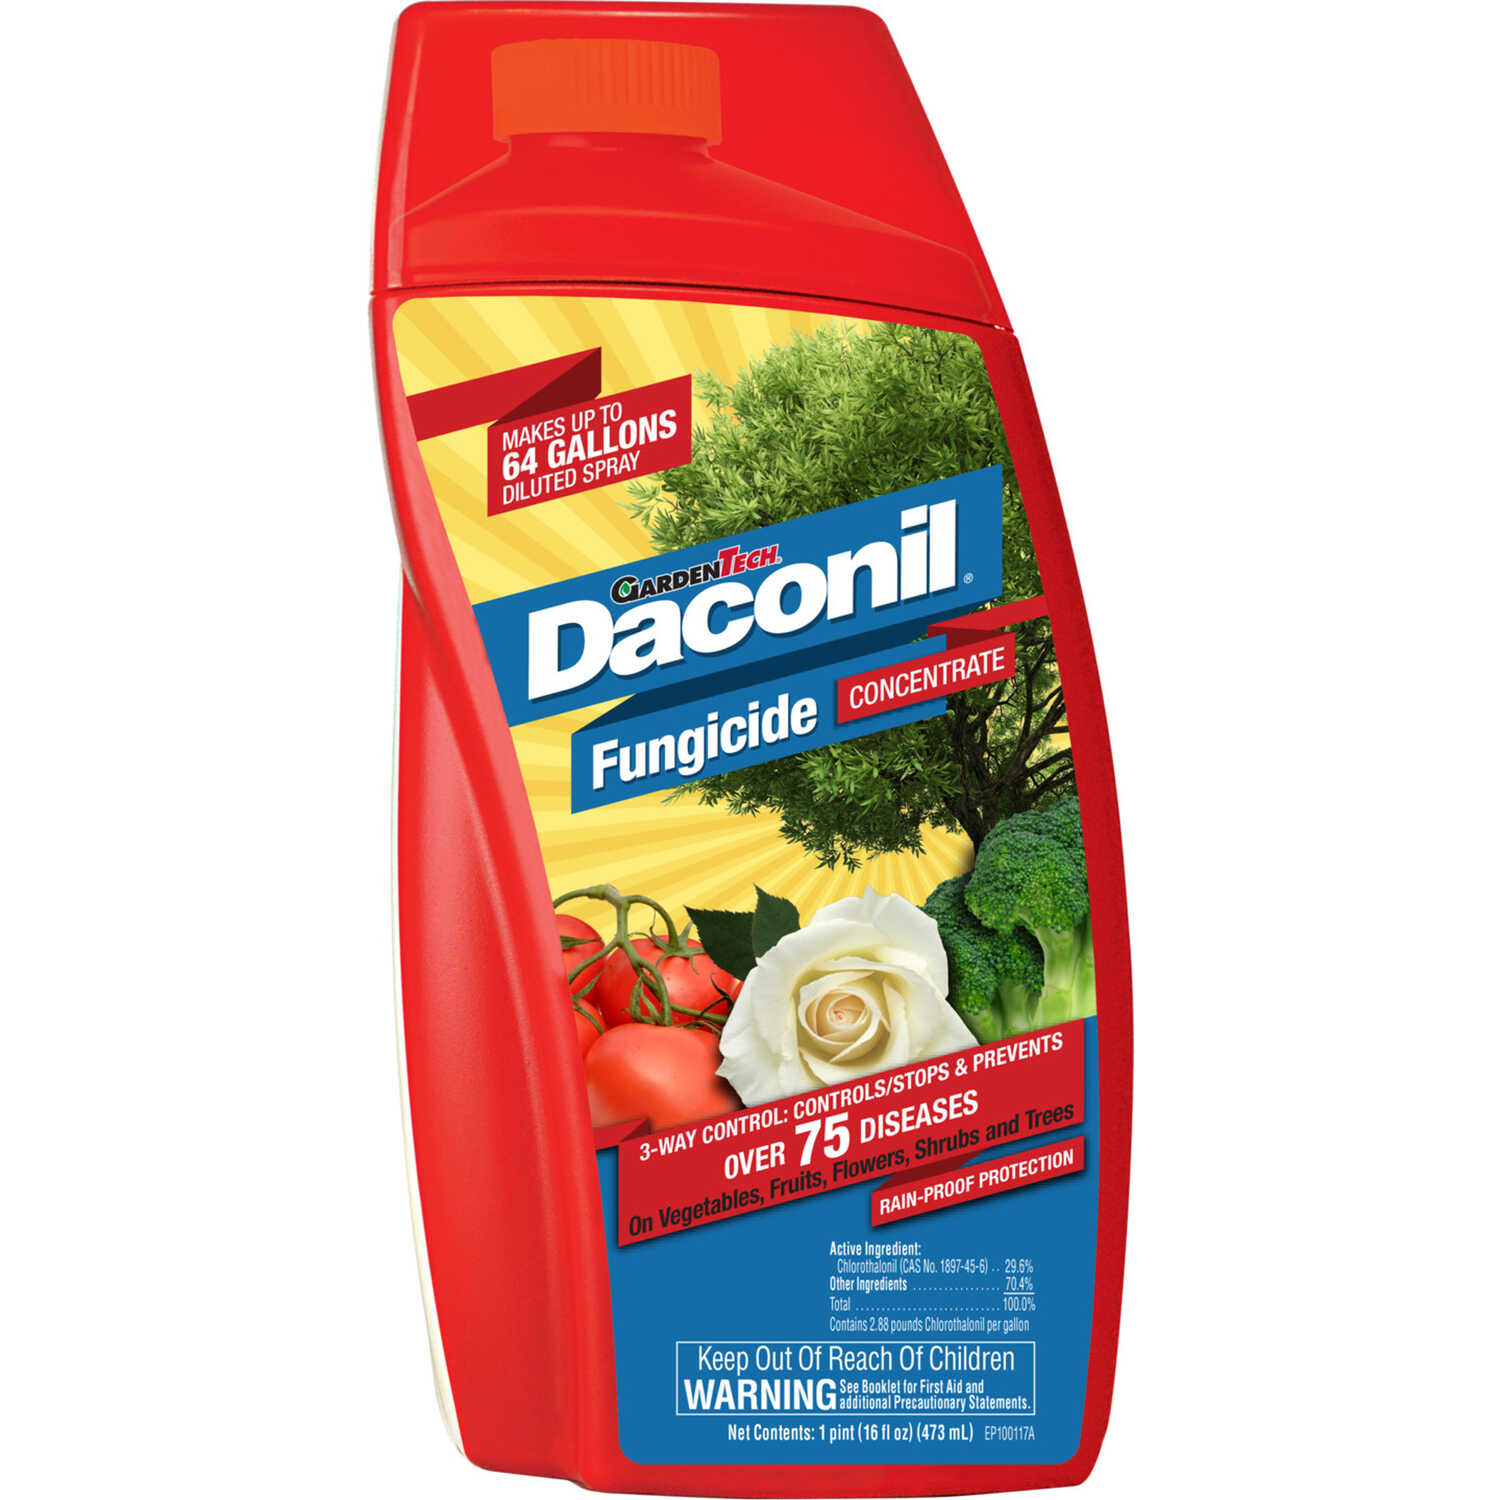 Garden Tech  Danconil  Concentrated Liquid  Fungicide  16 oz.